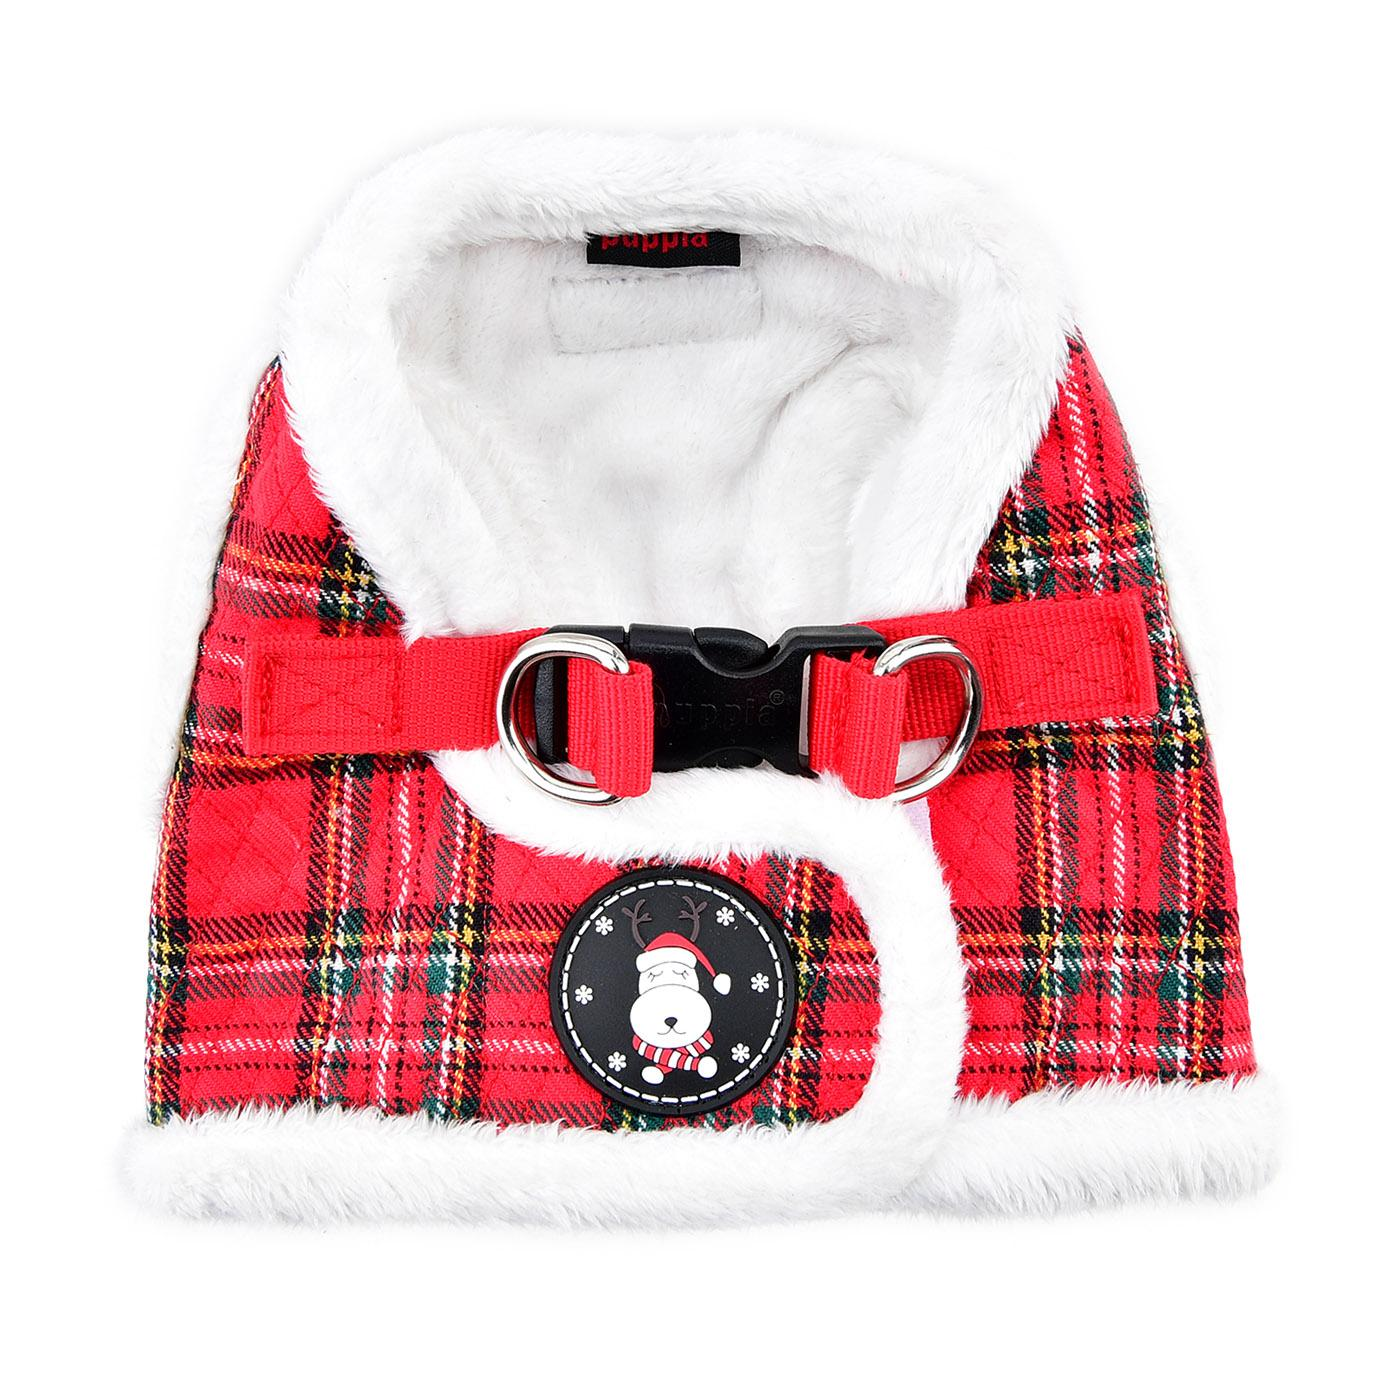 Blitzen Dog Harness Vest By Puppia - Red Plaid